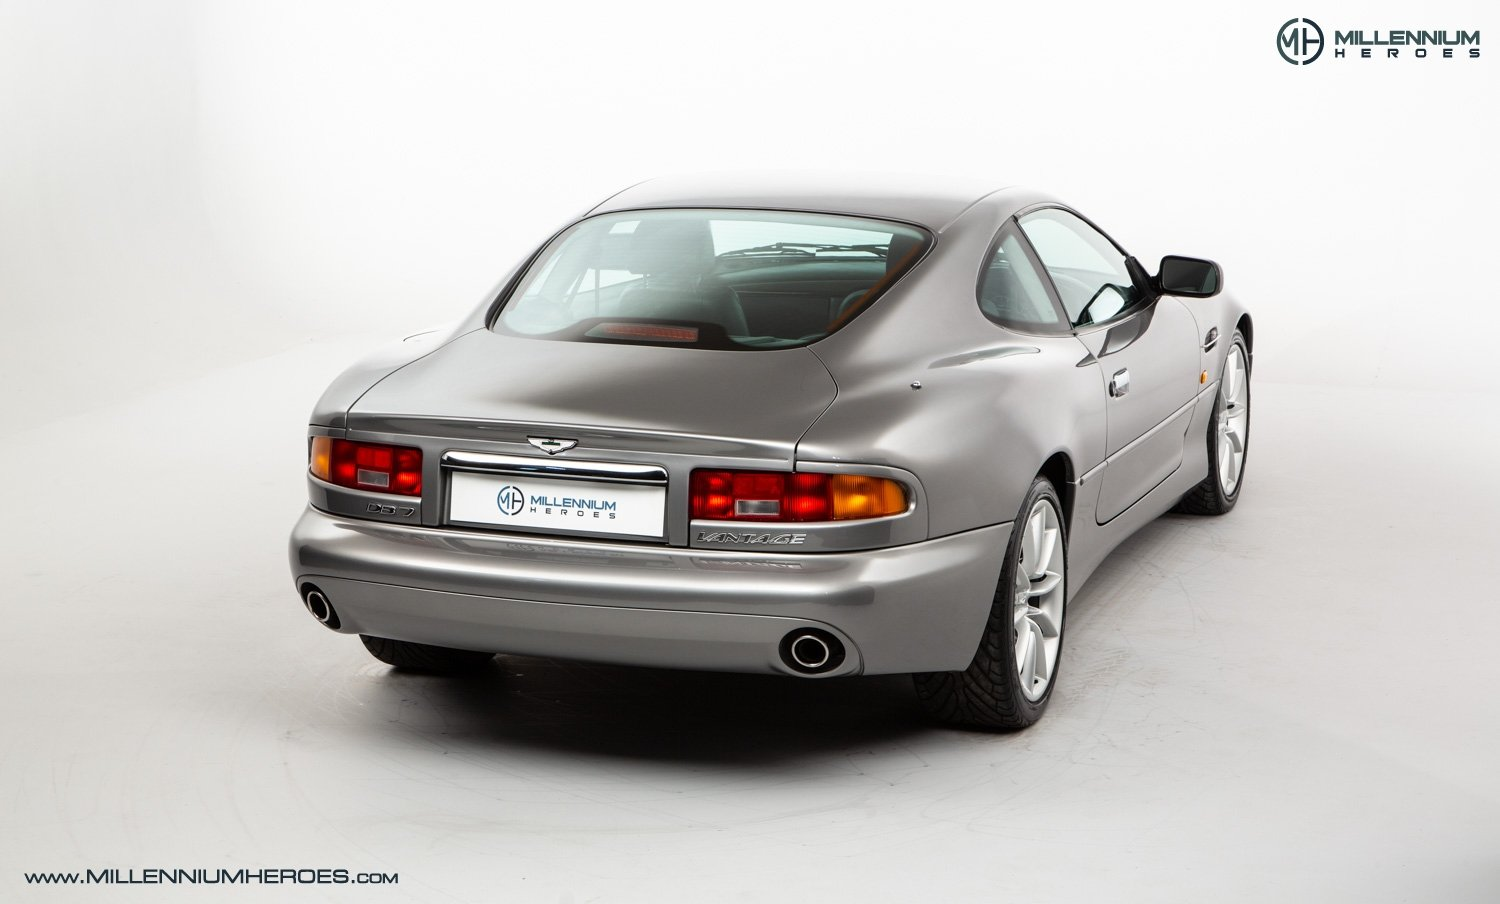 2000 ASTON MARTIN DB7 5.9 VANTAGE  For Sale (picture 11 of 24)